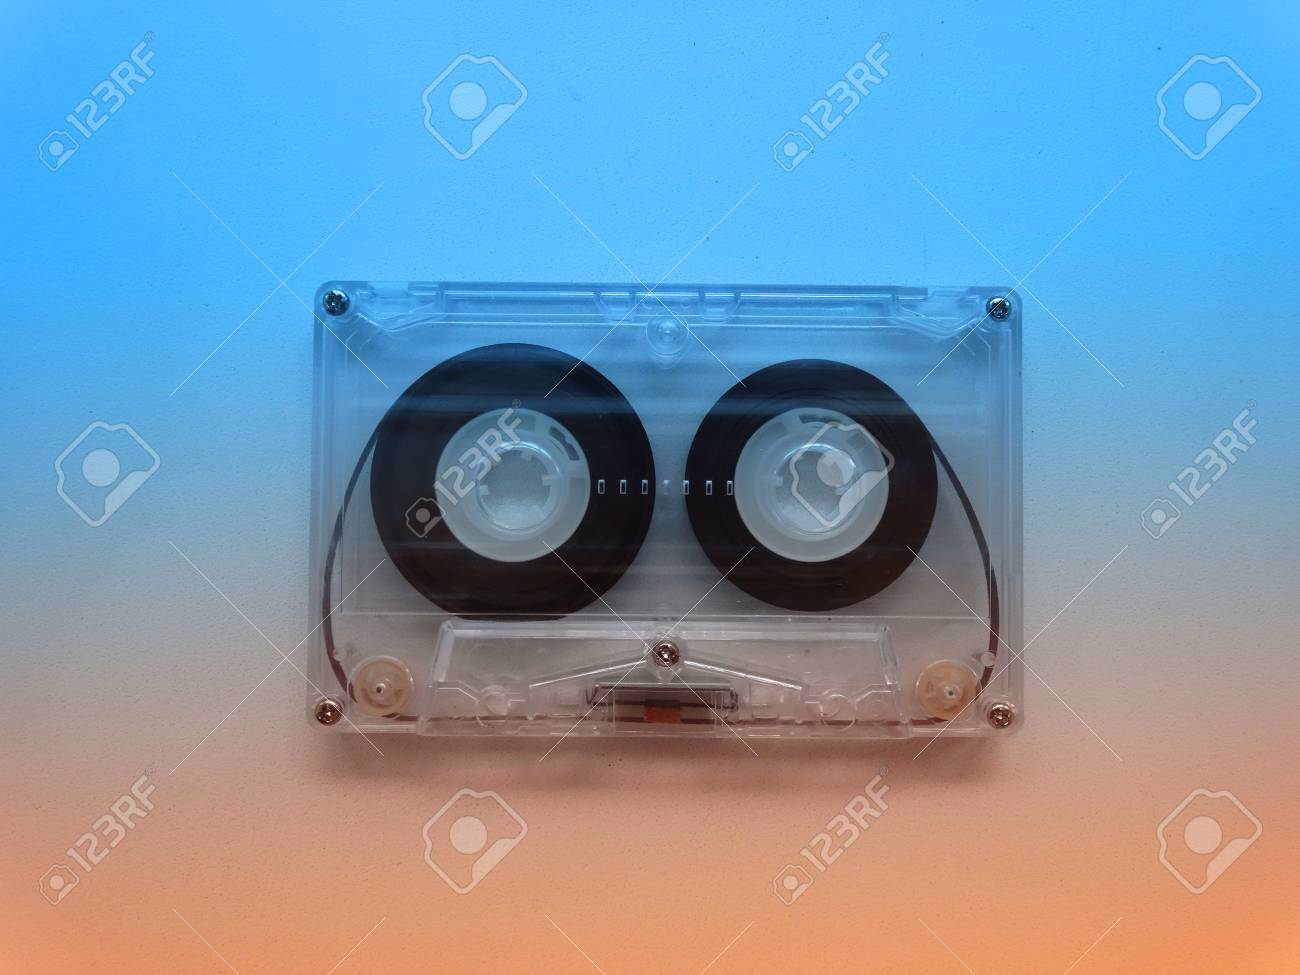 Most Inspiring Wallpaper Music Tape - 77934876-audio-cassettes-for-recorder-80s-90s-70s-retro-vintage-old-music-time-generation-music-tape-wallpape  Trends_111957.jpg